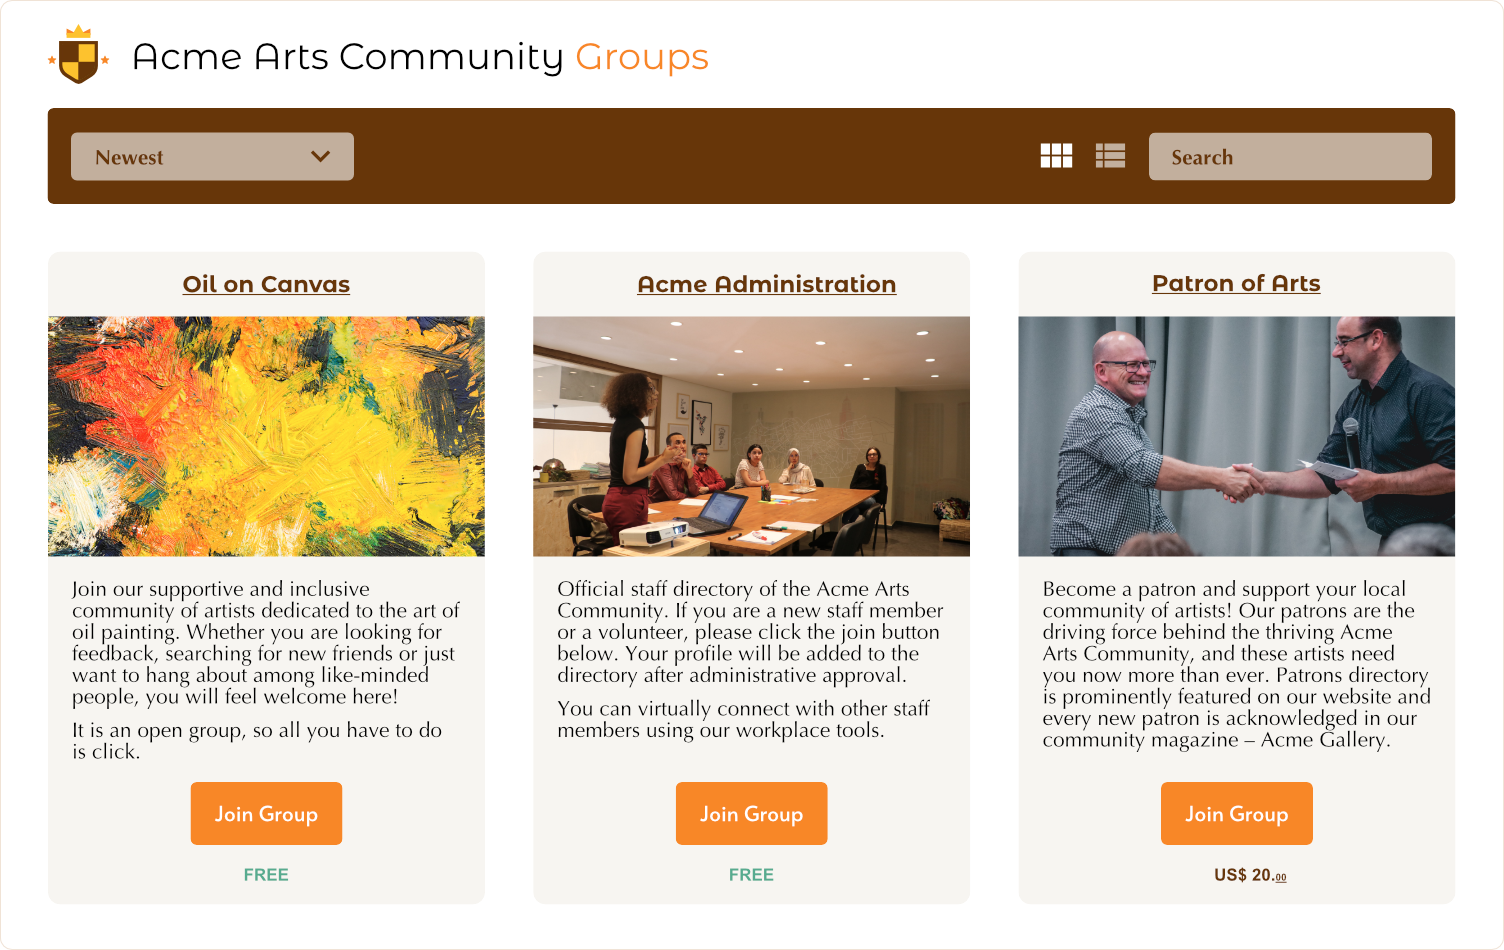 profilegrid-user-profiles-groups-and-communities screenshot 6